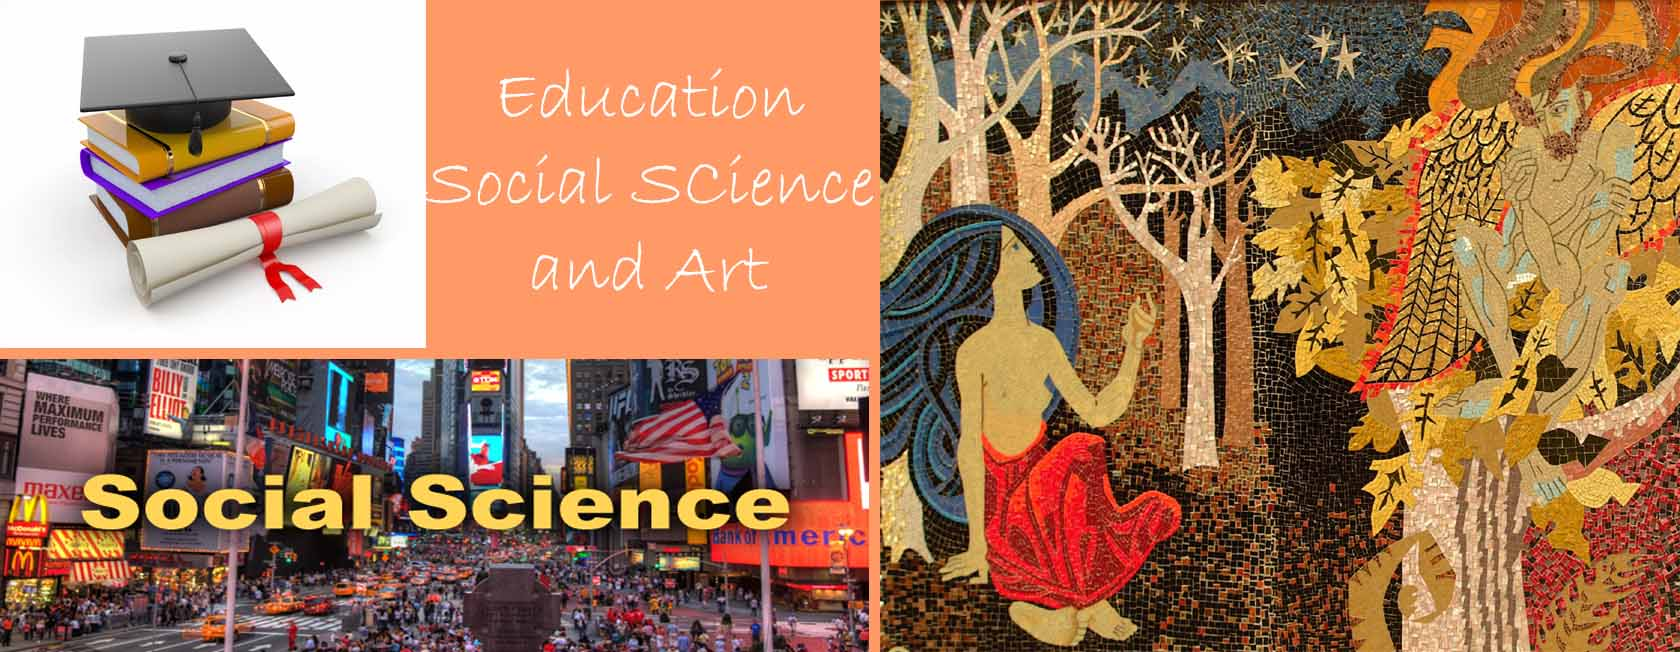 Education, Social Sciences and Arts